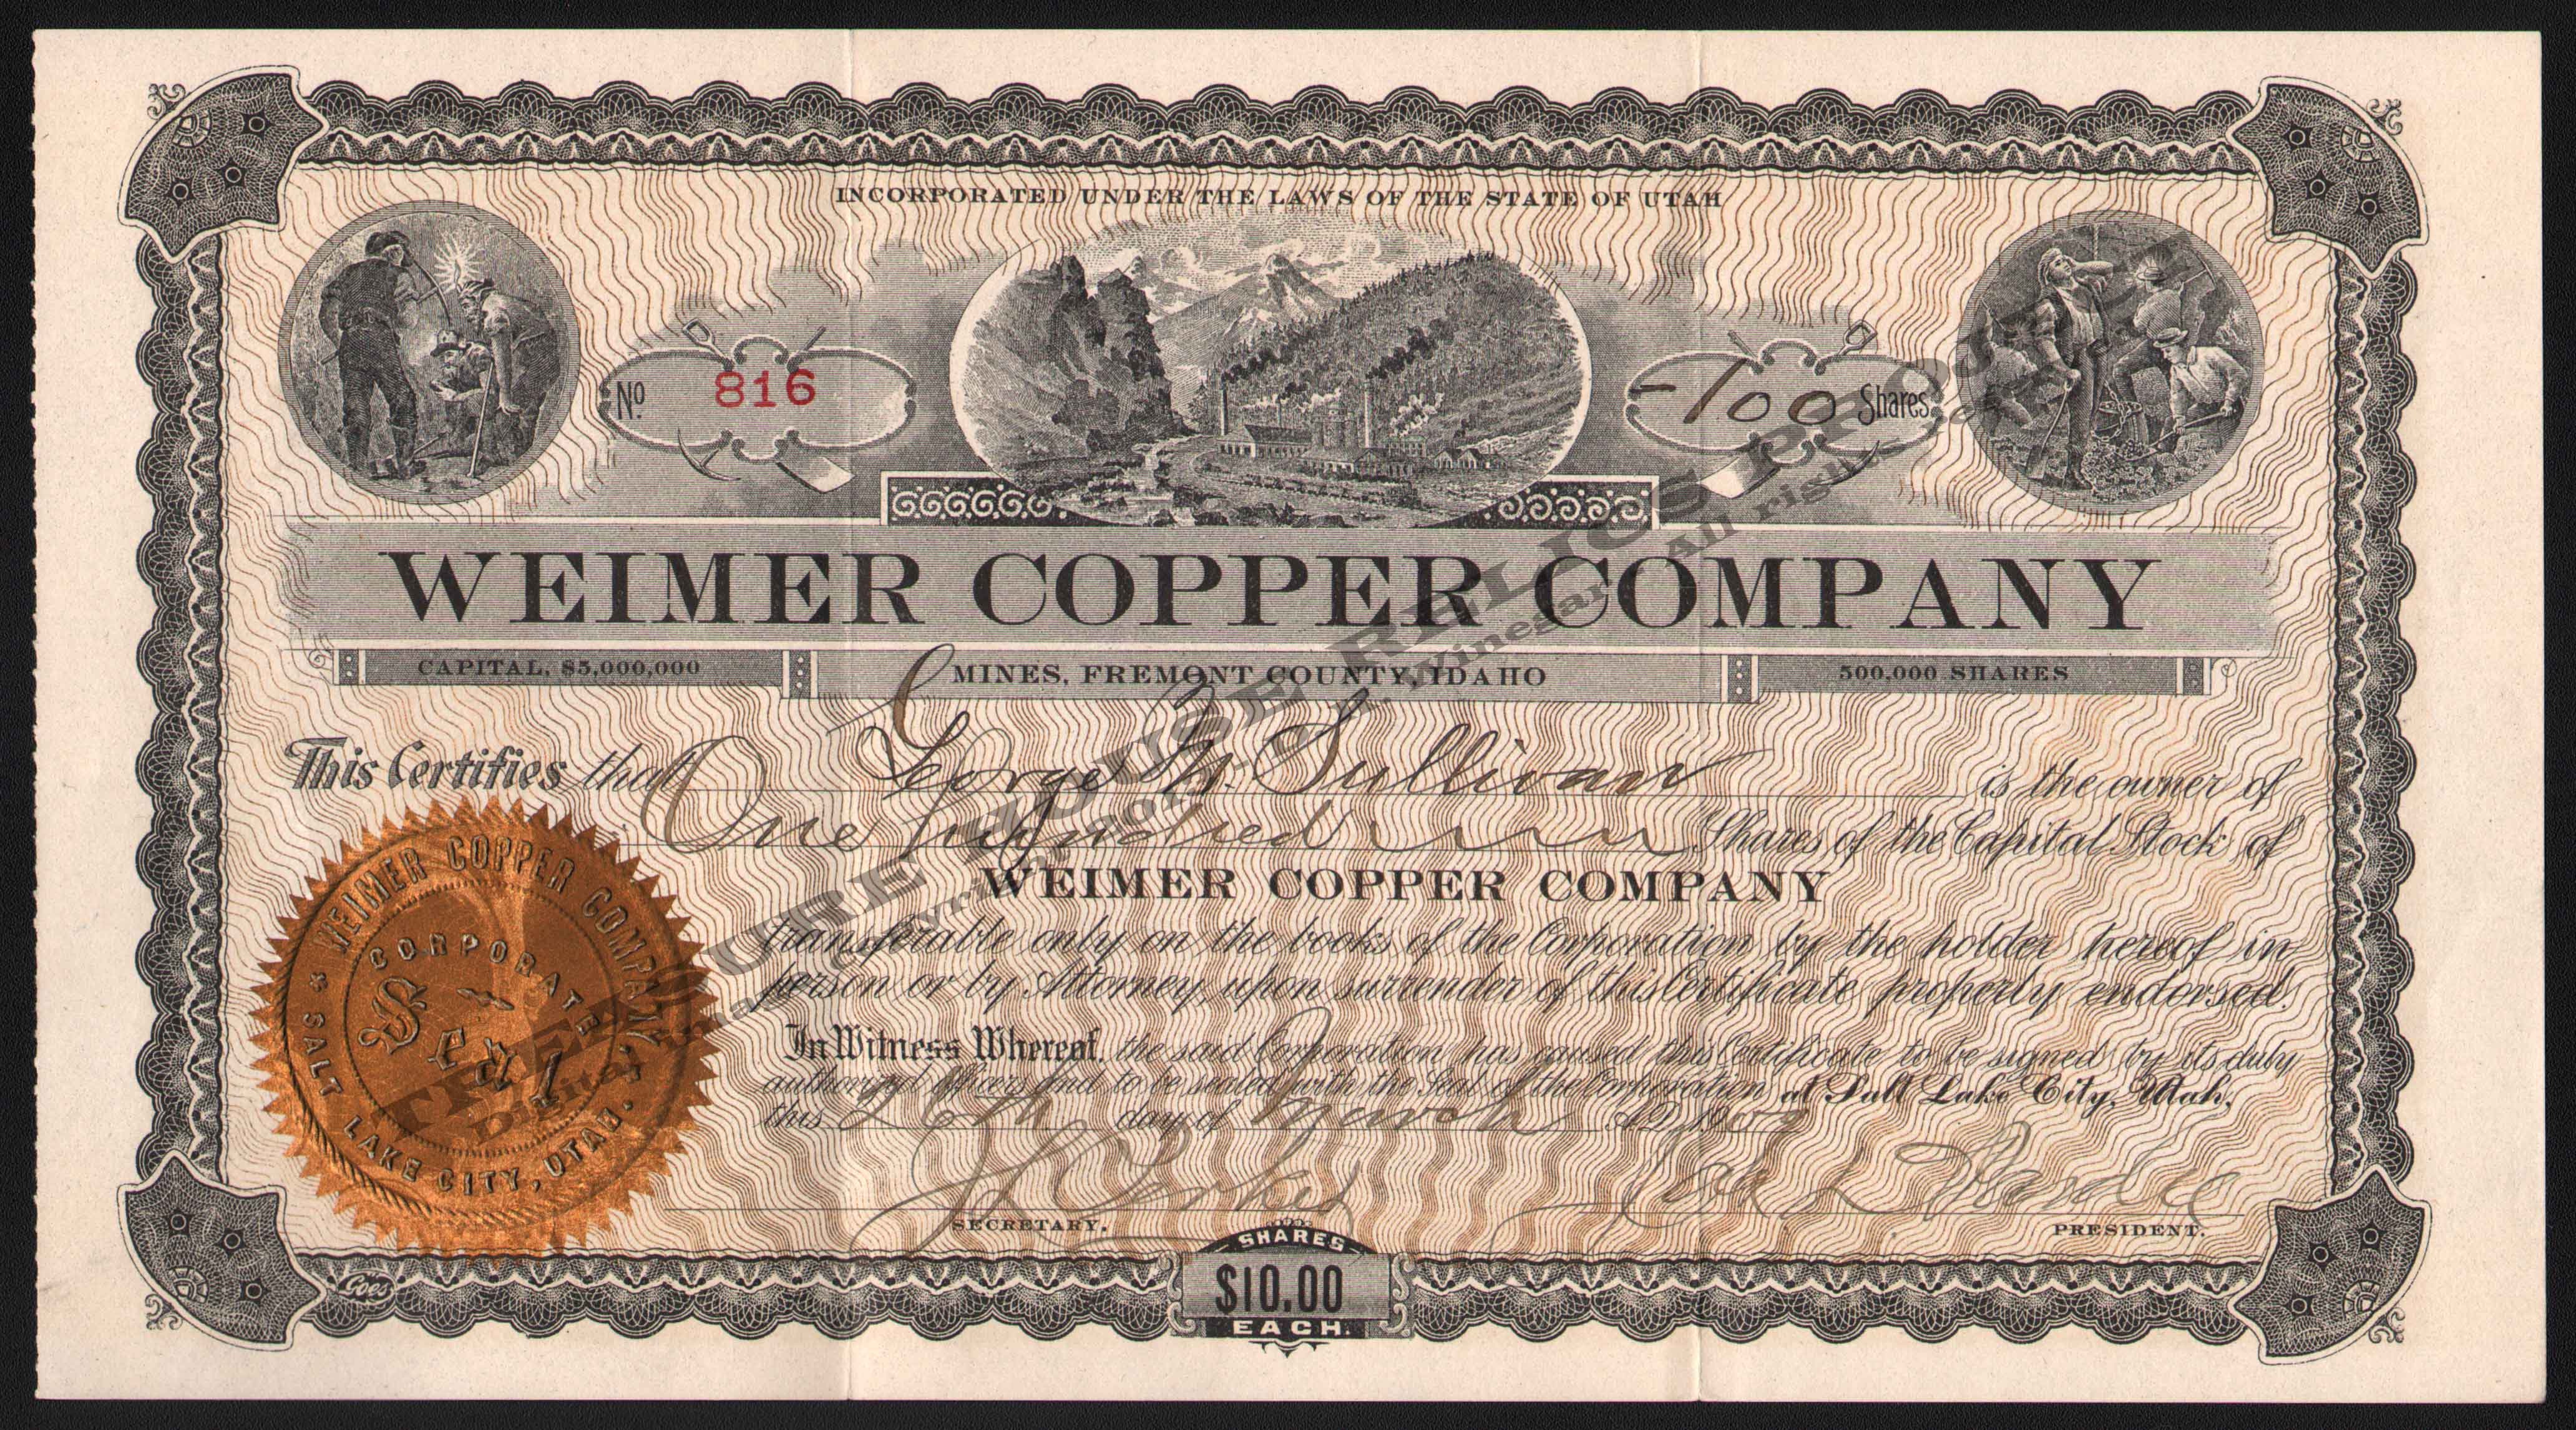 STOCKS/WEIMER_COPPER_COMPANY_816_1907_GMS_400_CROP_EMBOSS.jpg